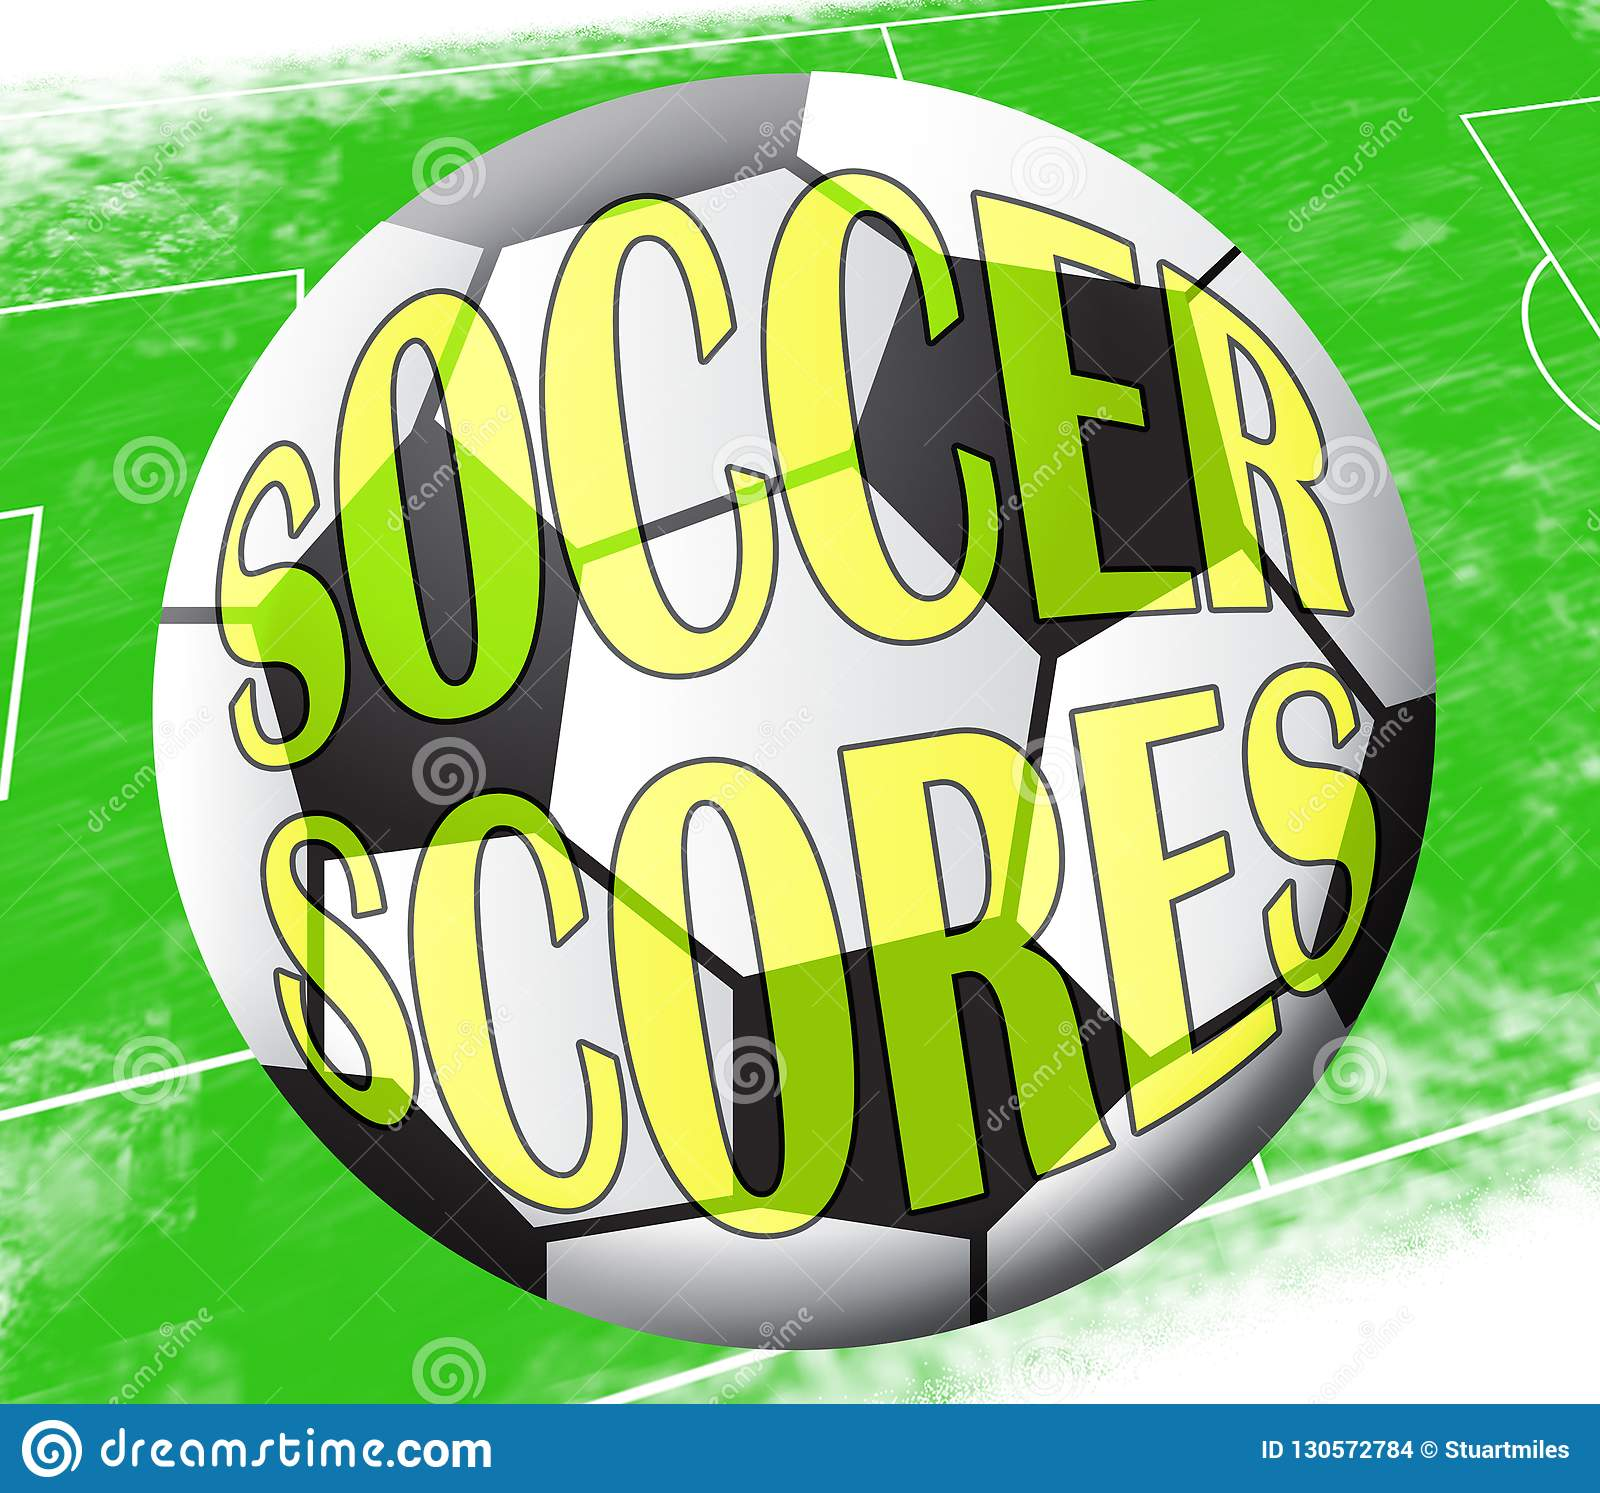 Soccer Scores Means Football Results 3d Illustration Stock